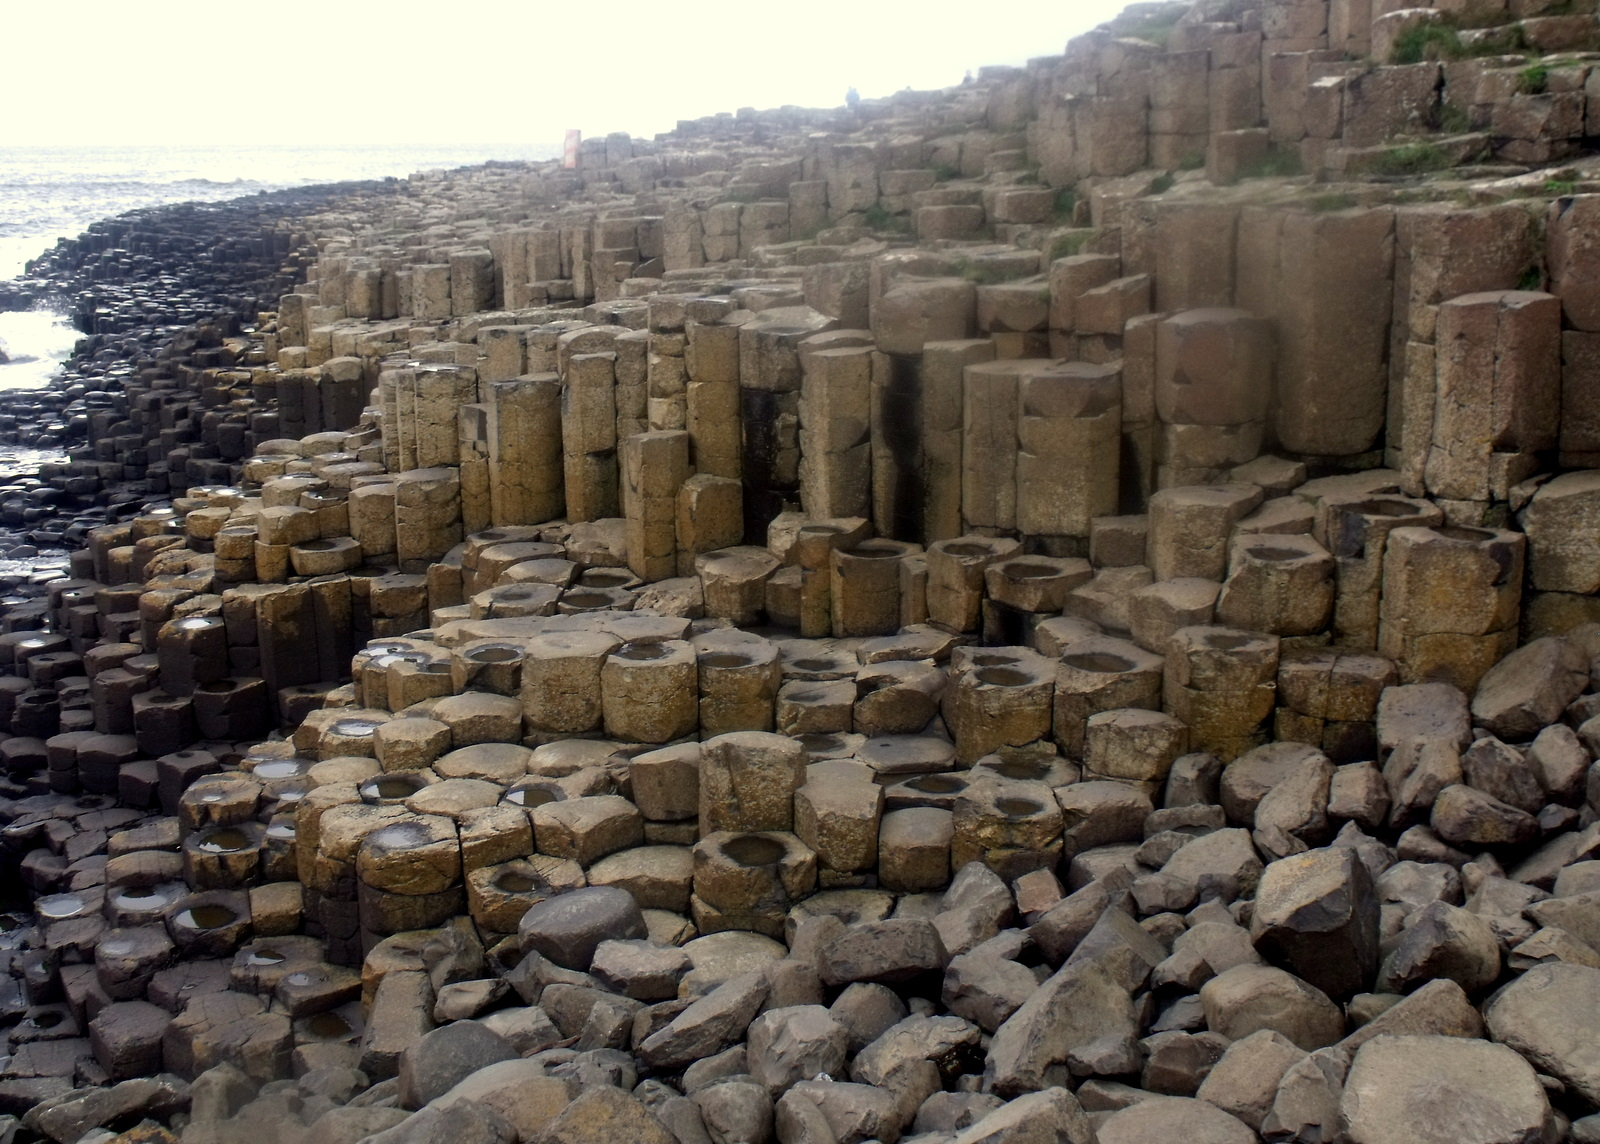 mosaic of rock pillars